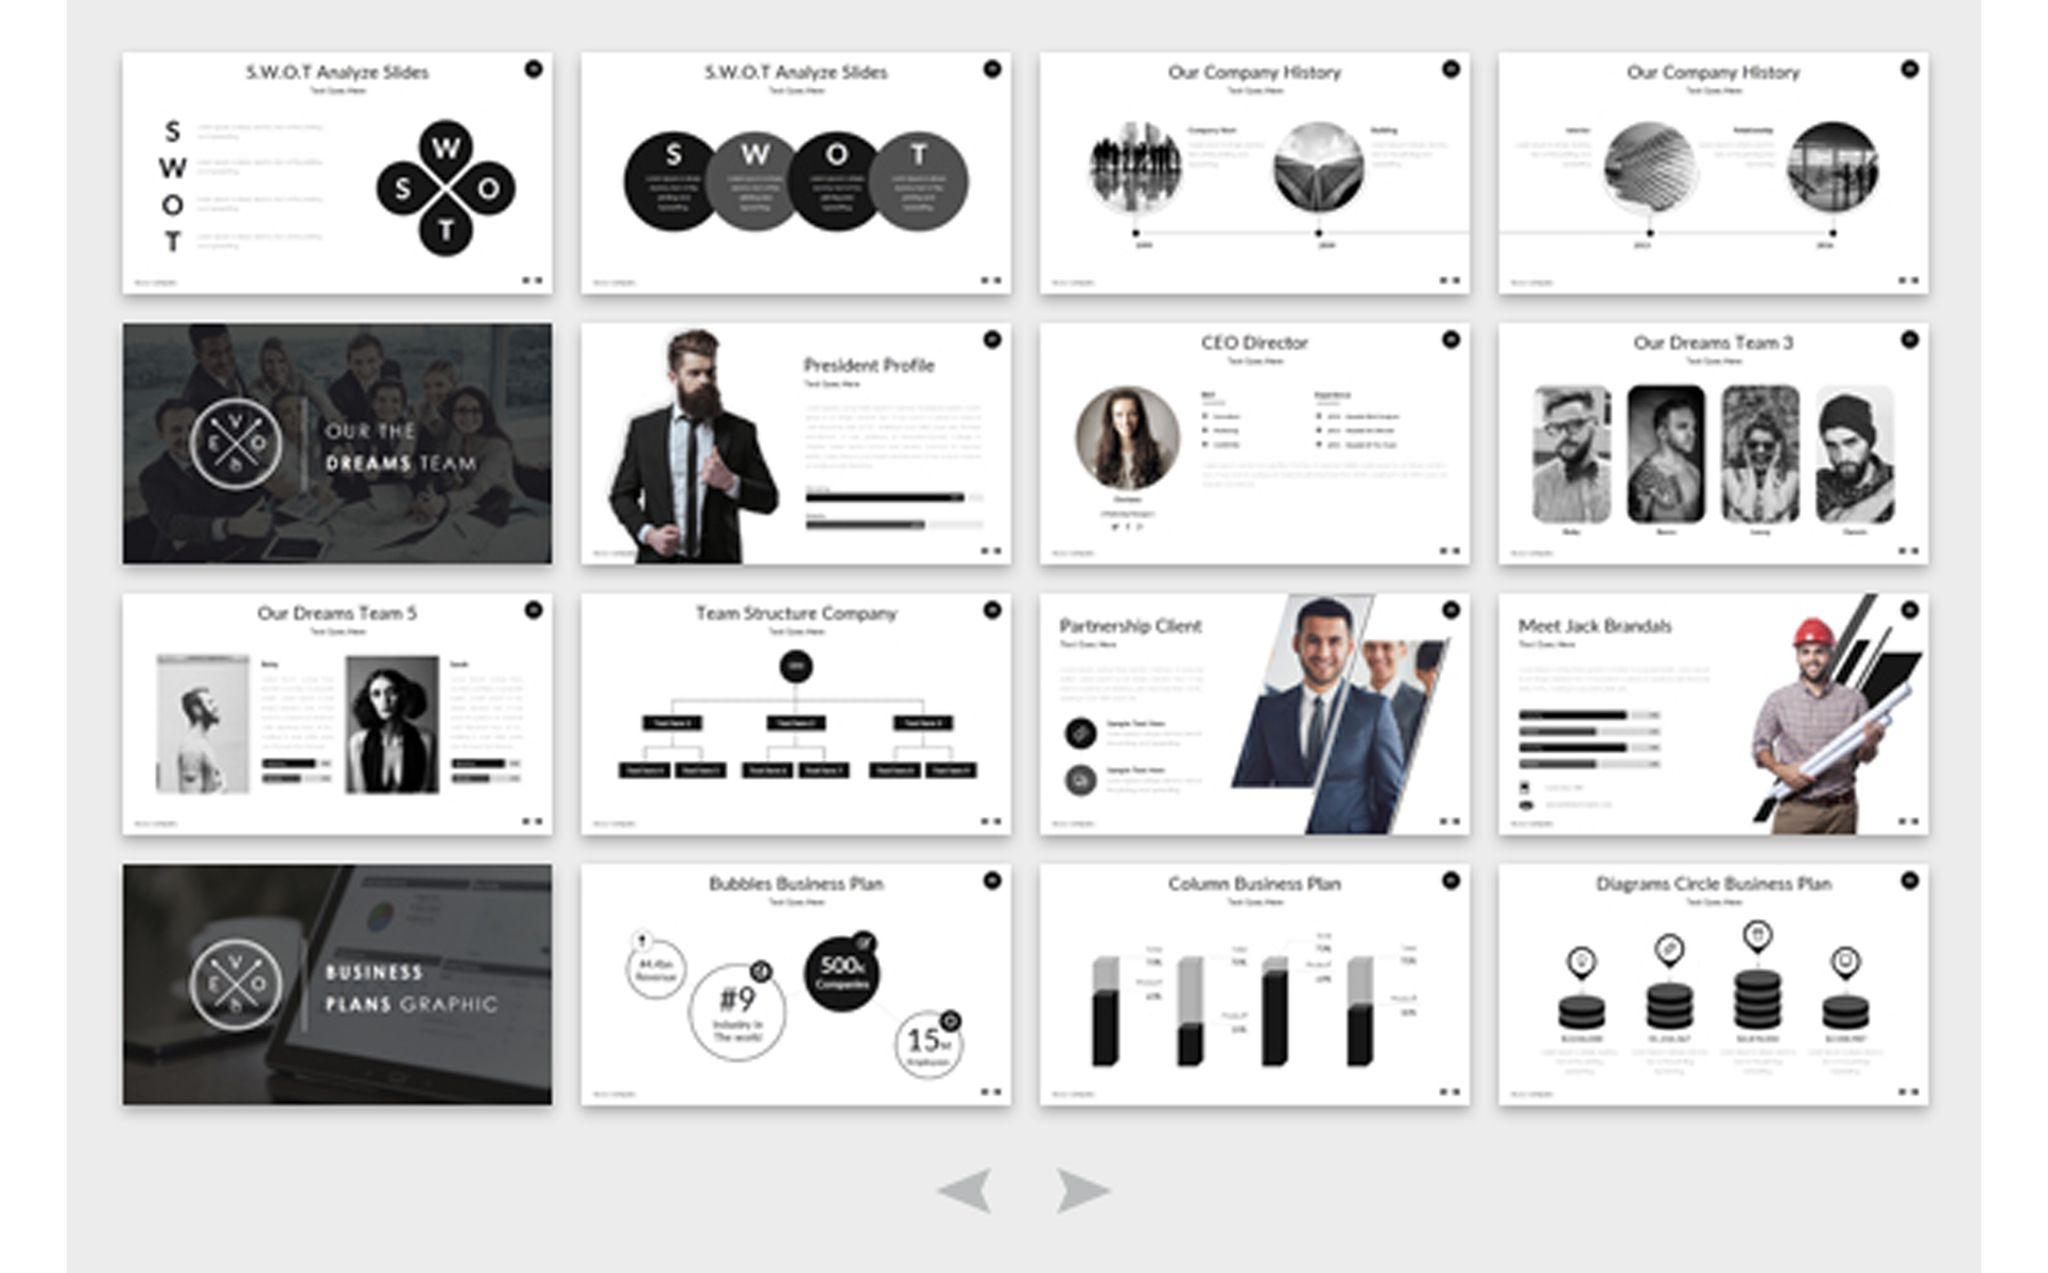 Evolution multipurpose powerpoint template 65628 evolution multipurpose powerpoint template big screenshot toneelgroepblik Image collections